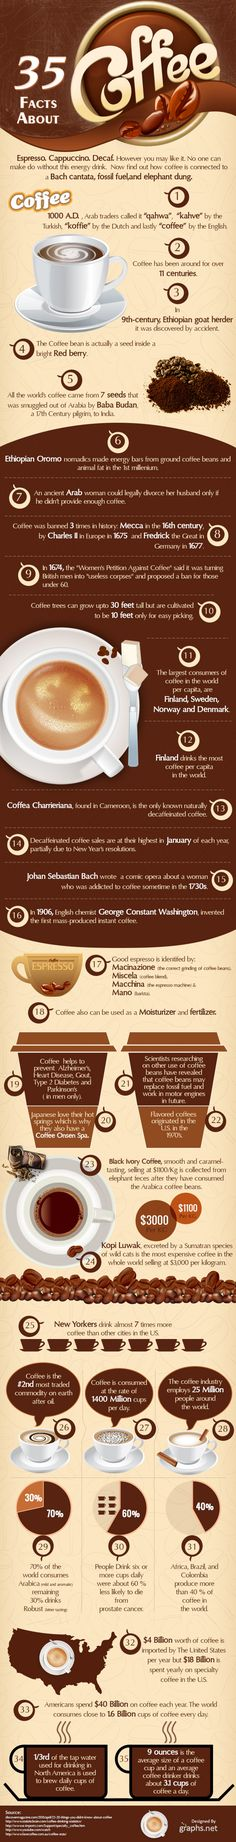 Interesting facts about coffee!